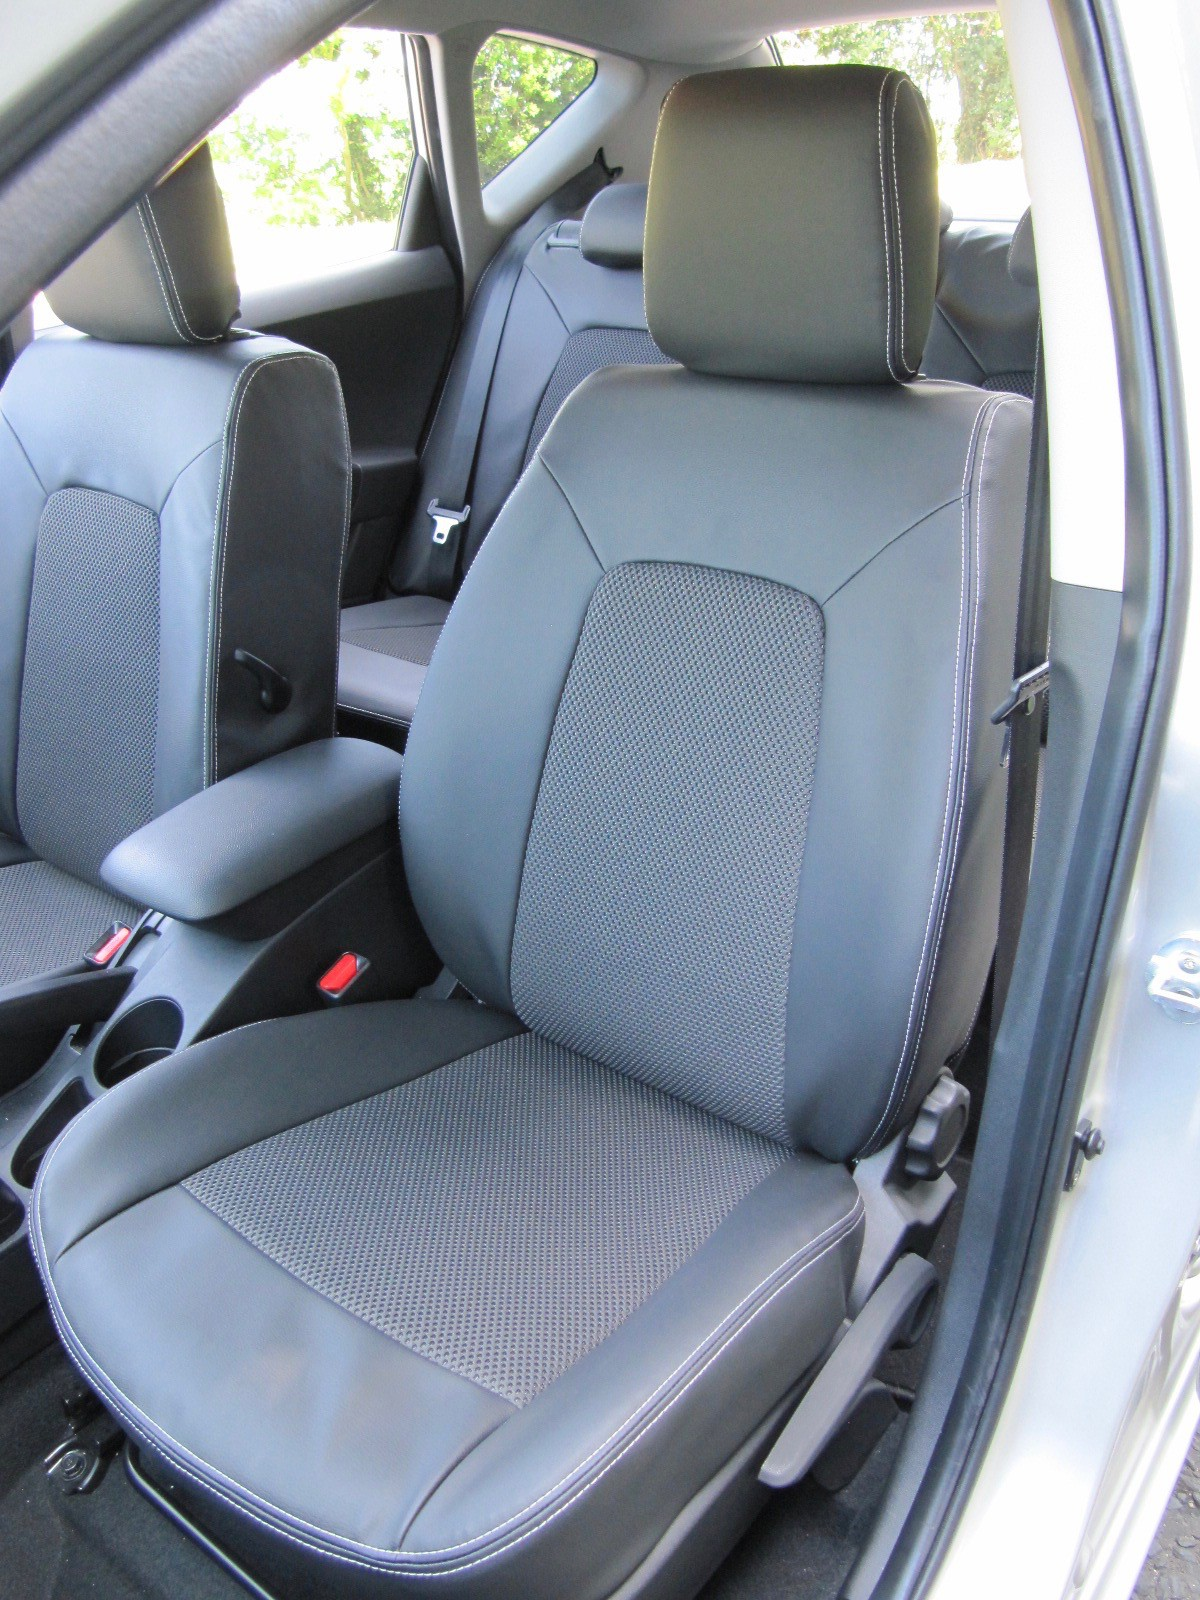 KIA CEED seat covers